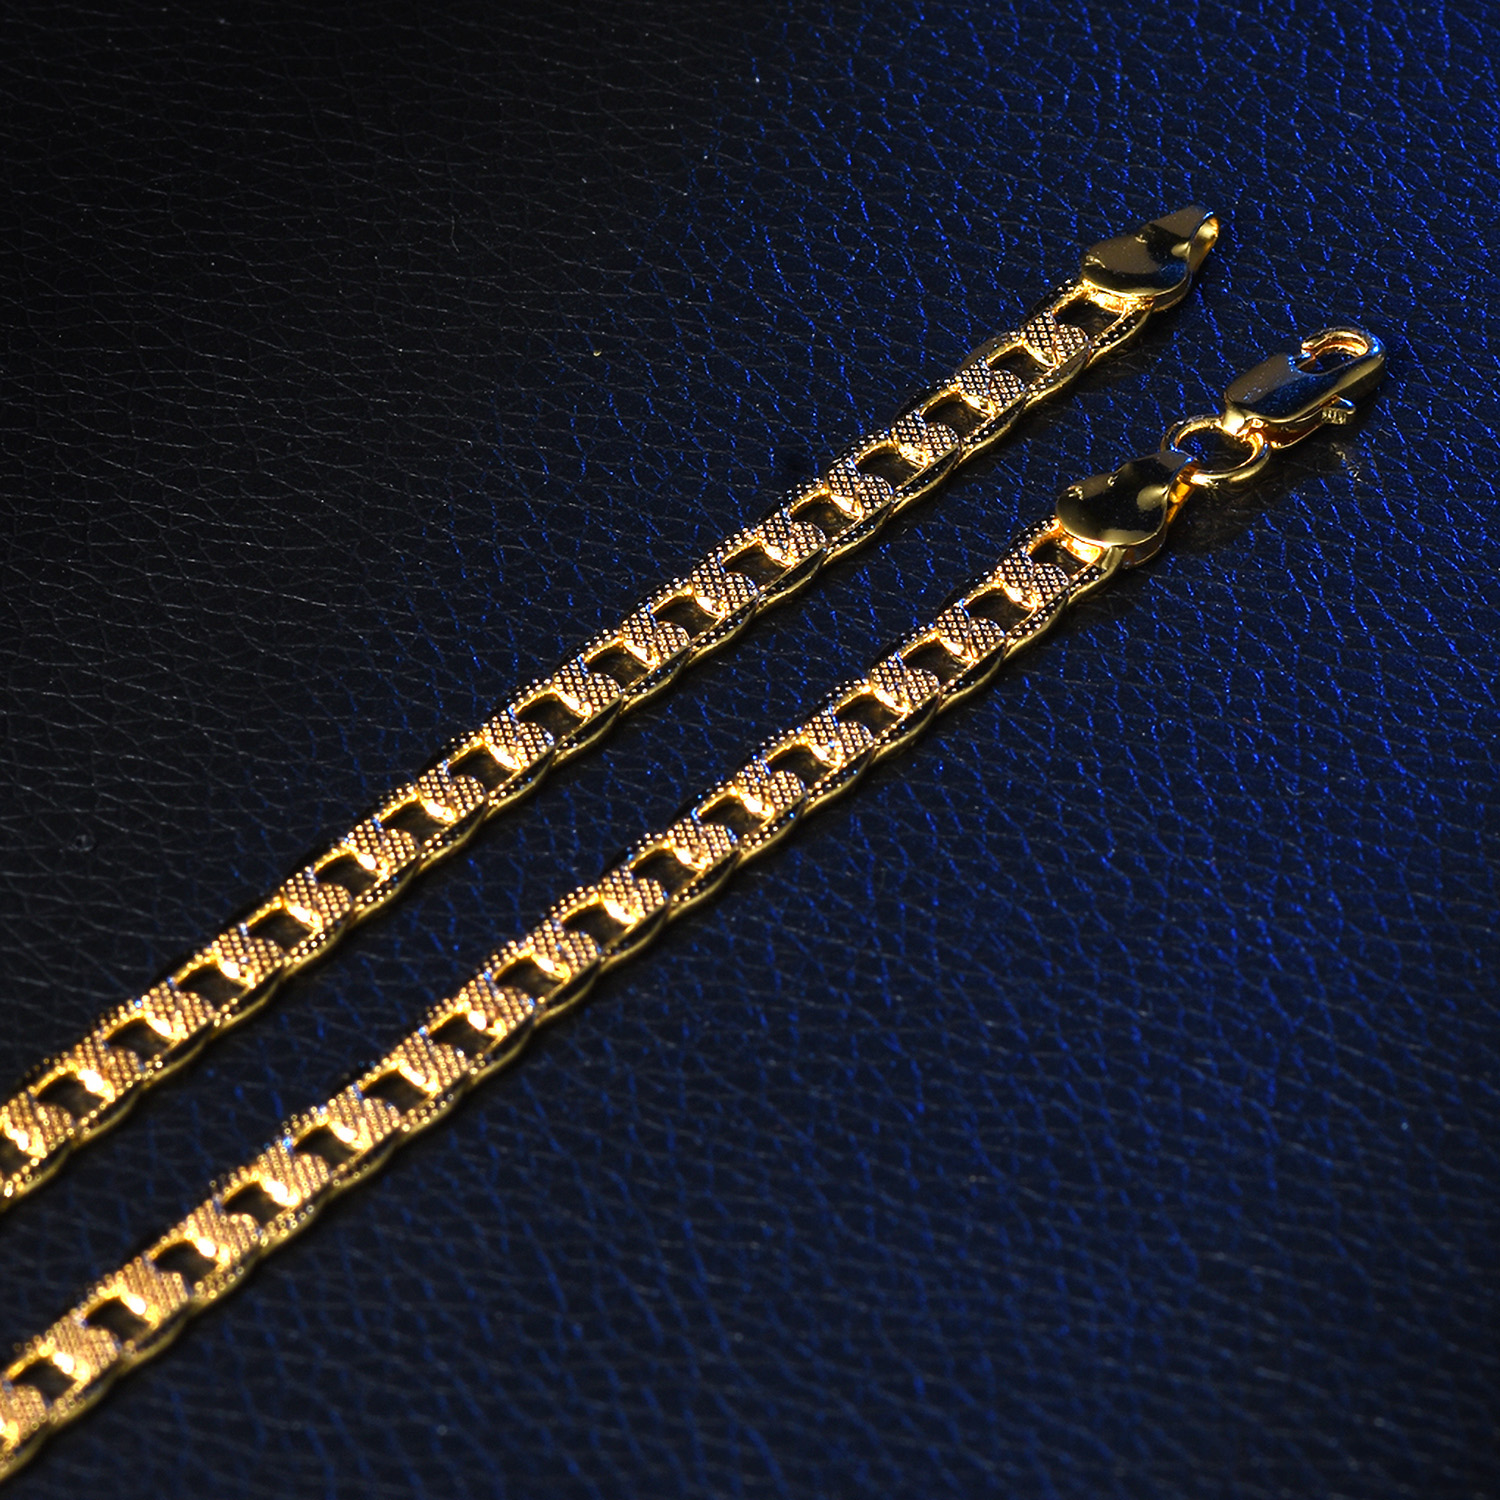 6fe230513fefb Details about 6mm Flat Side Pattern Curb Gold Filled Stainless Steel Women  Men Necklace Choker